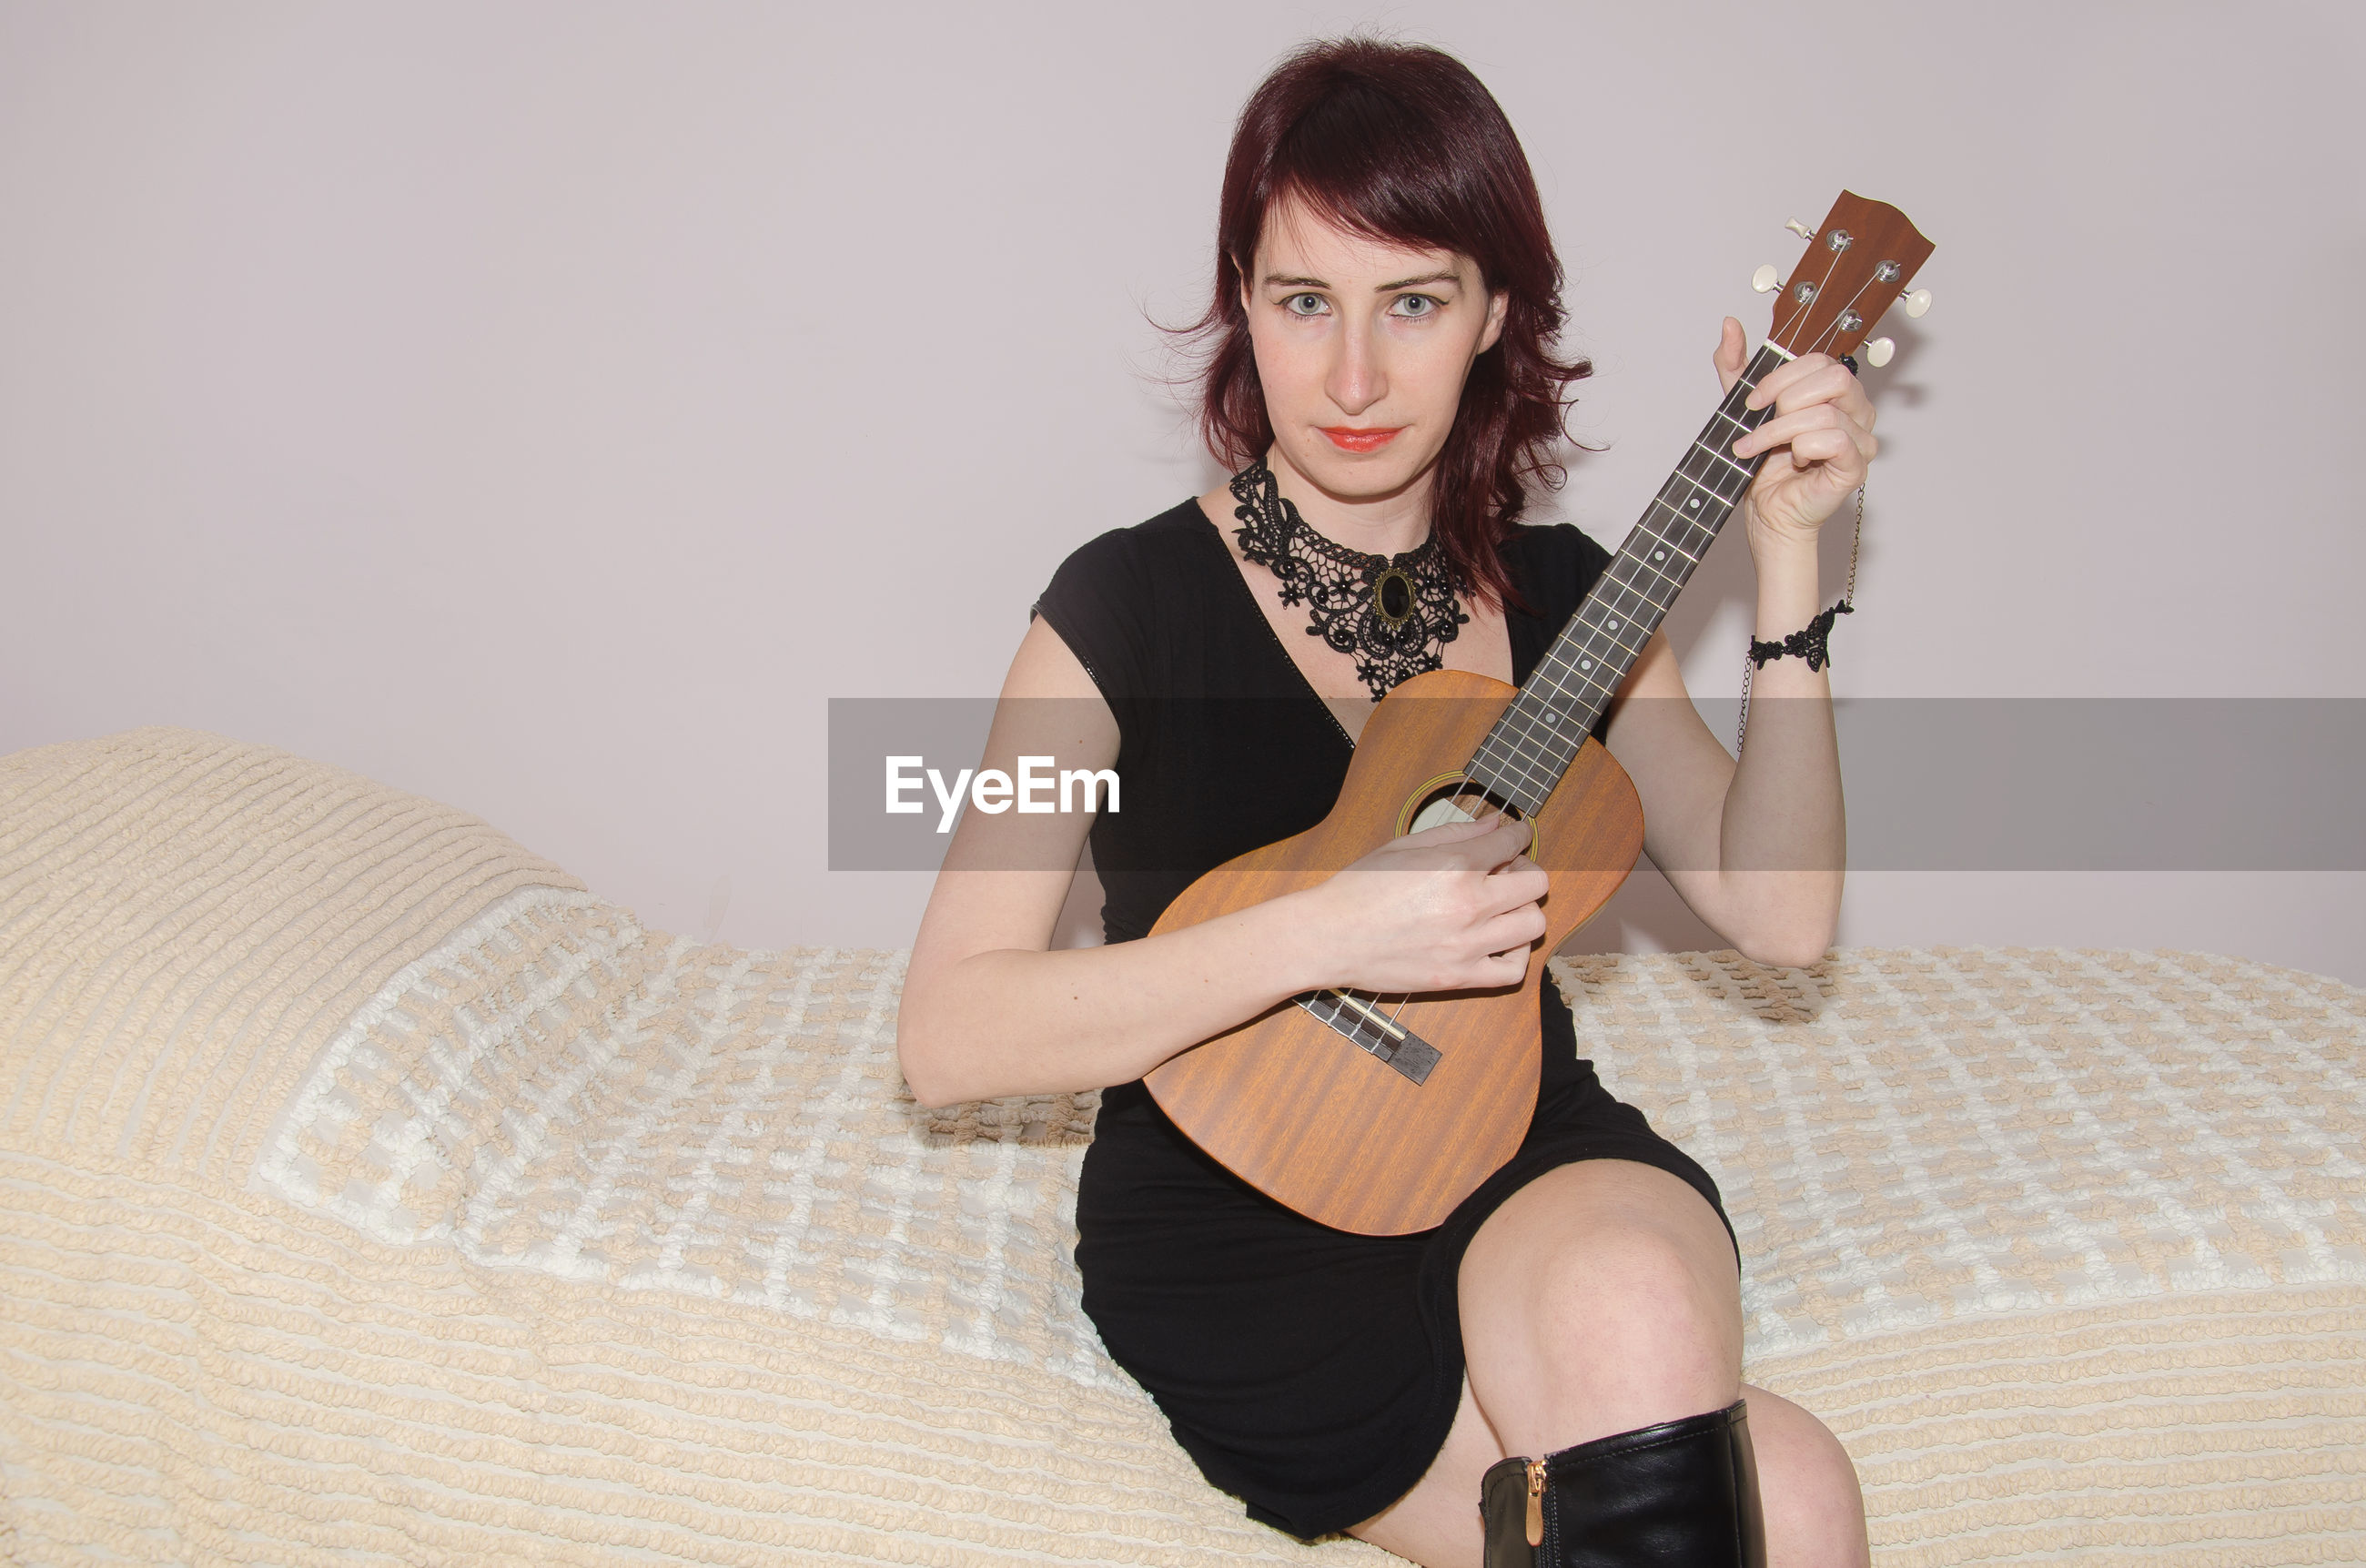 Portrait of woman playing guitar while sitting on bed